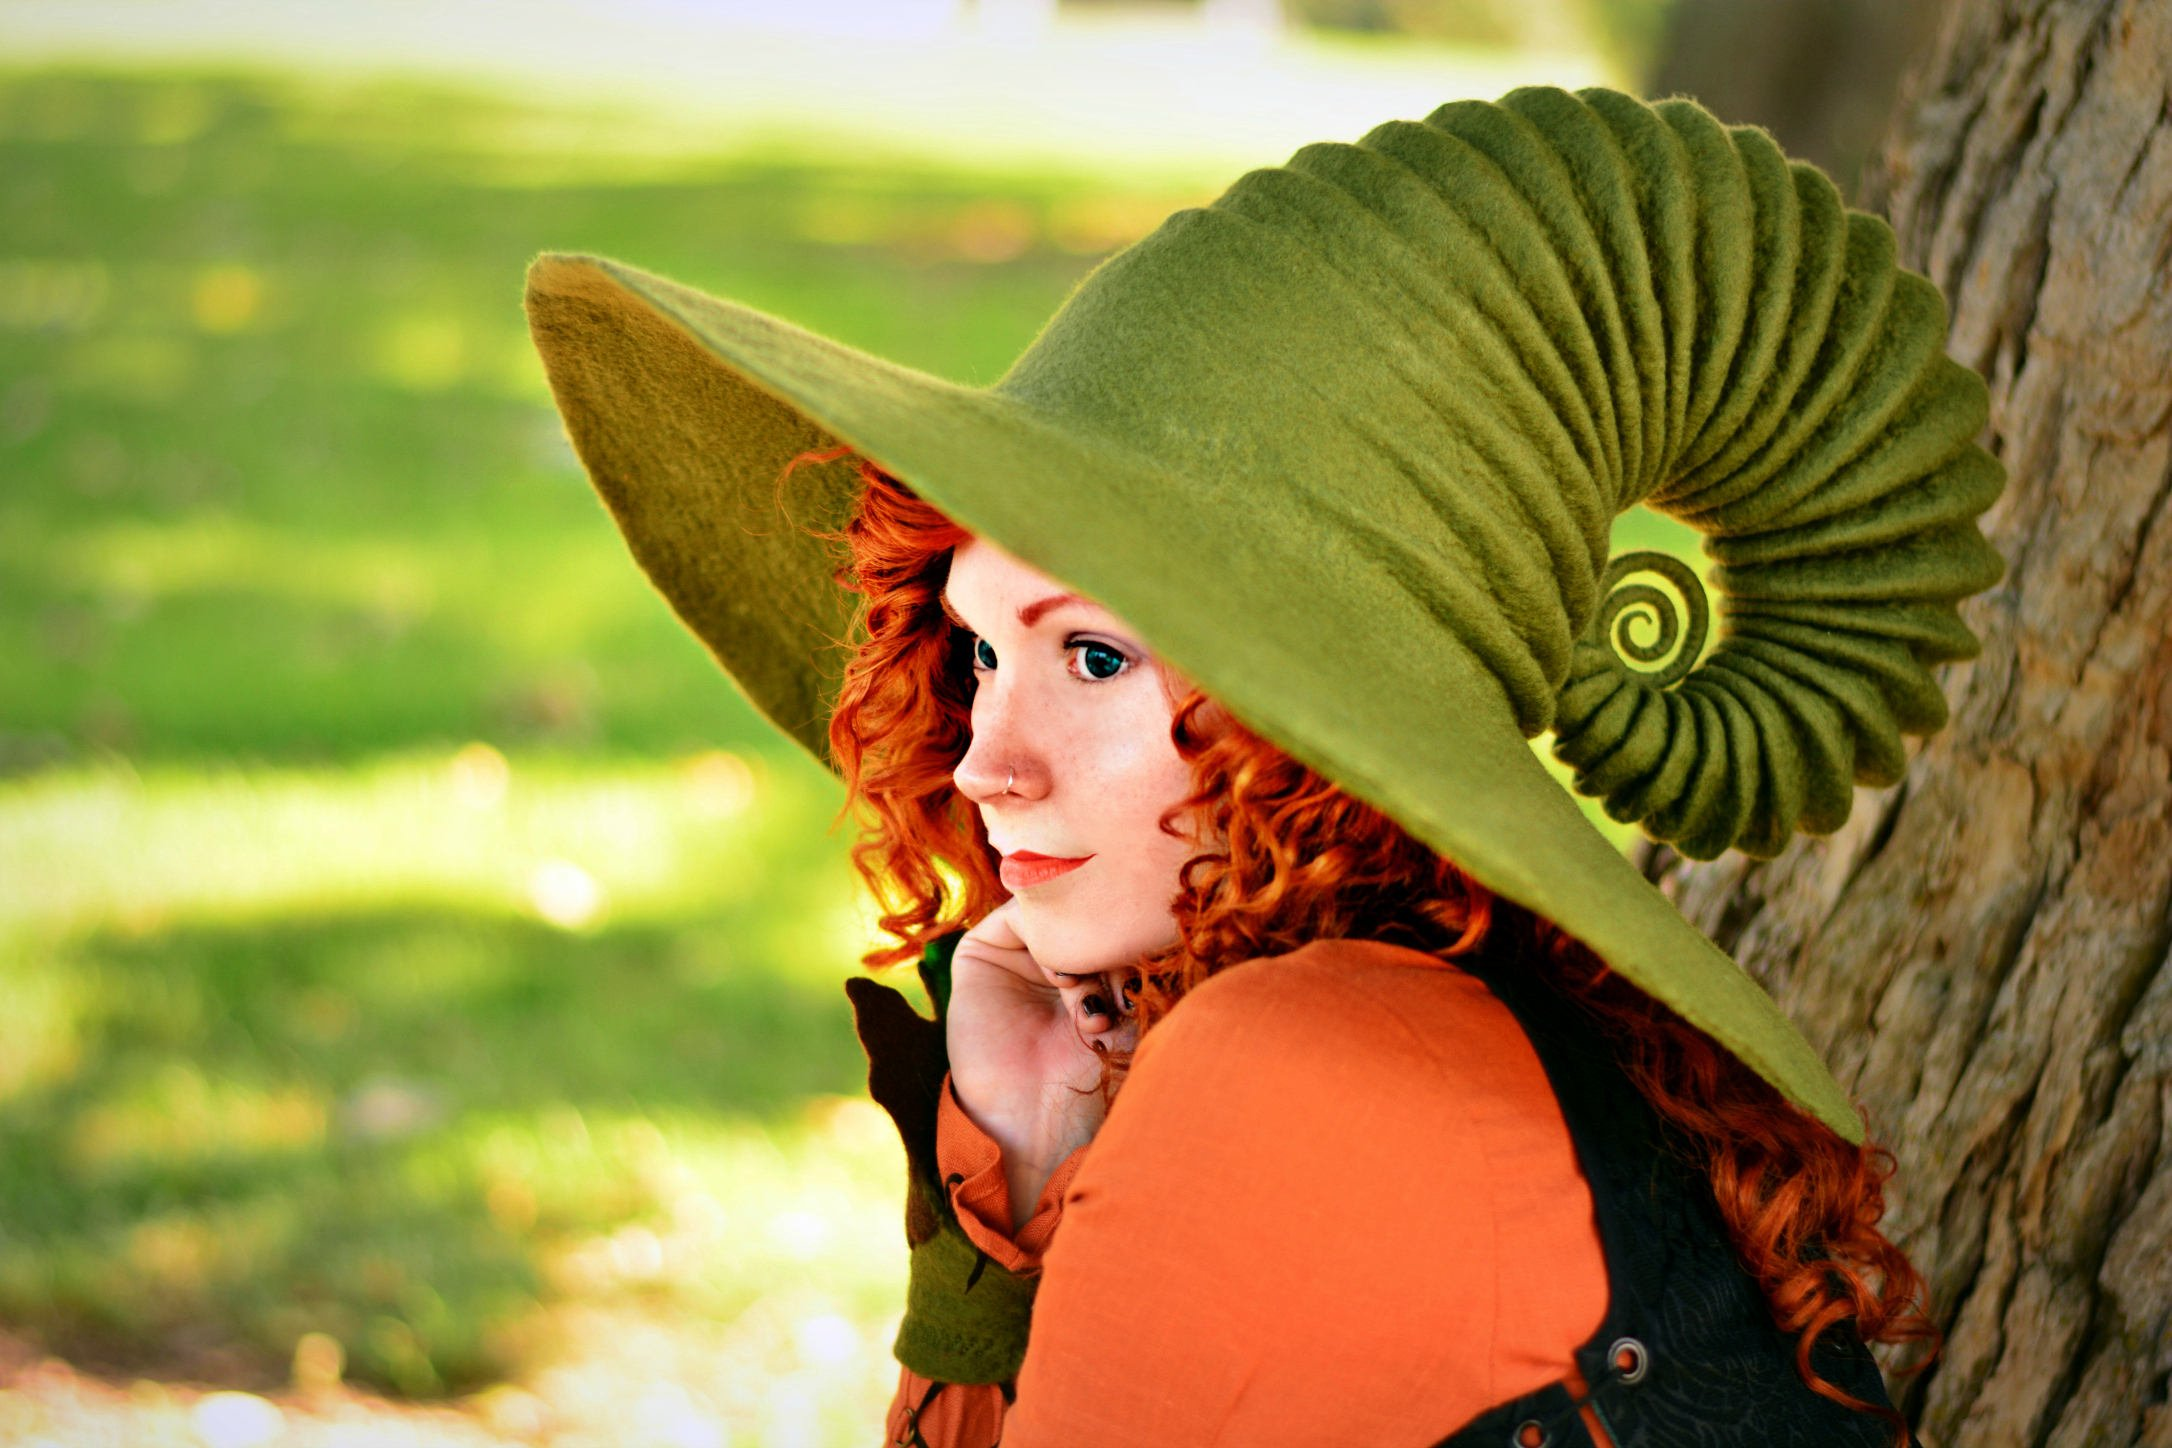 The artist behind these spellbinding witch hats almost stopped making them after her first one